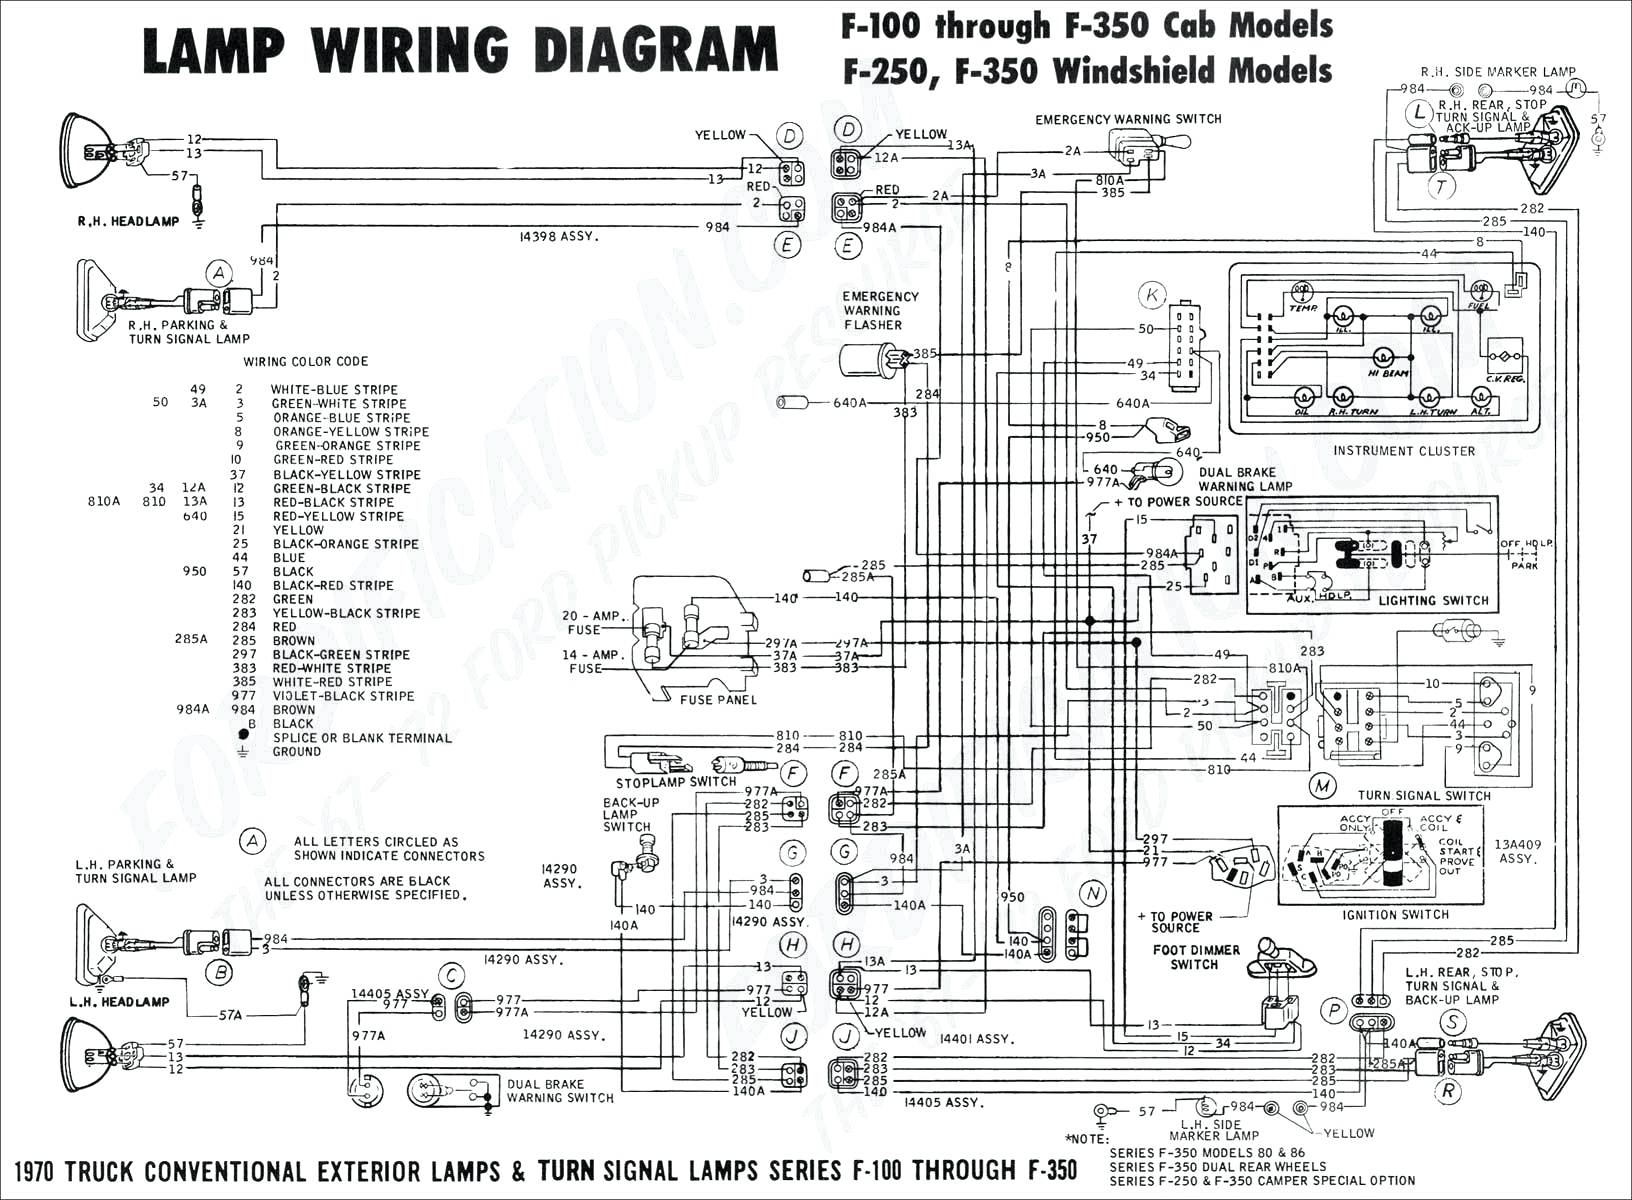 ford f250 wiring diagram Collection-ford f250 wiring diagram Collection 1986 Ford F350 Wiring Diagram Fresh 1999 Trailer 12 DOWNLOAD Wiring Diagram Detail Name ford f250 15-a